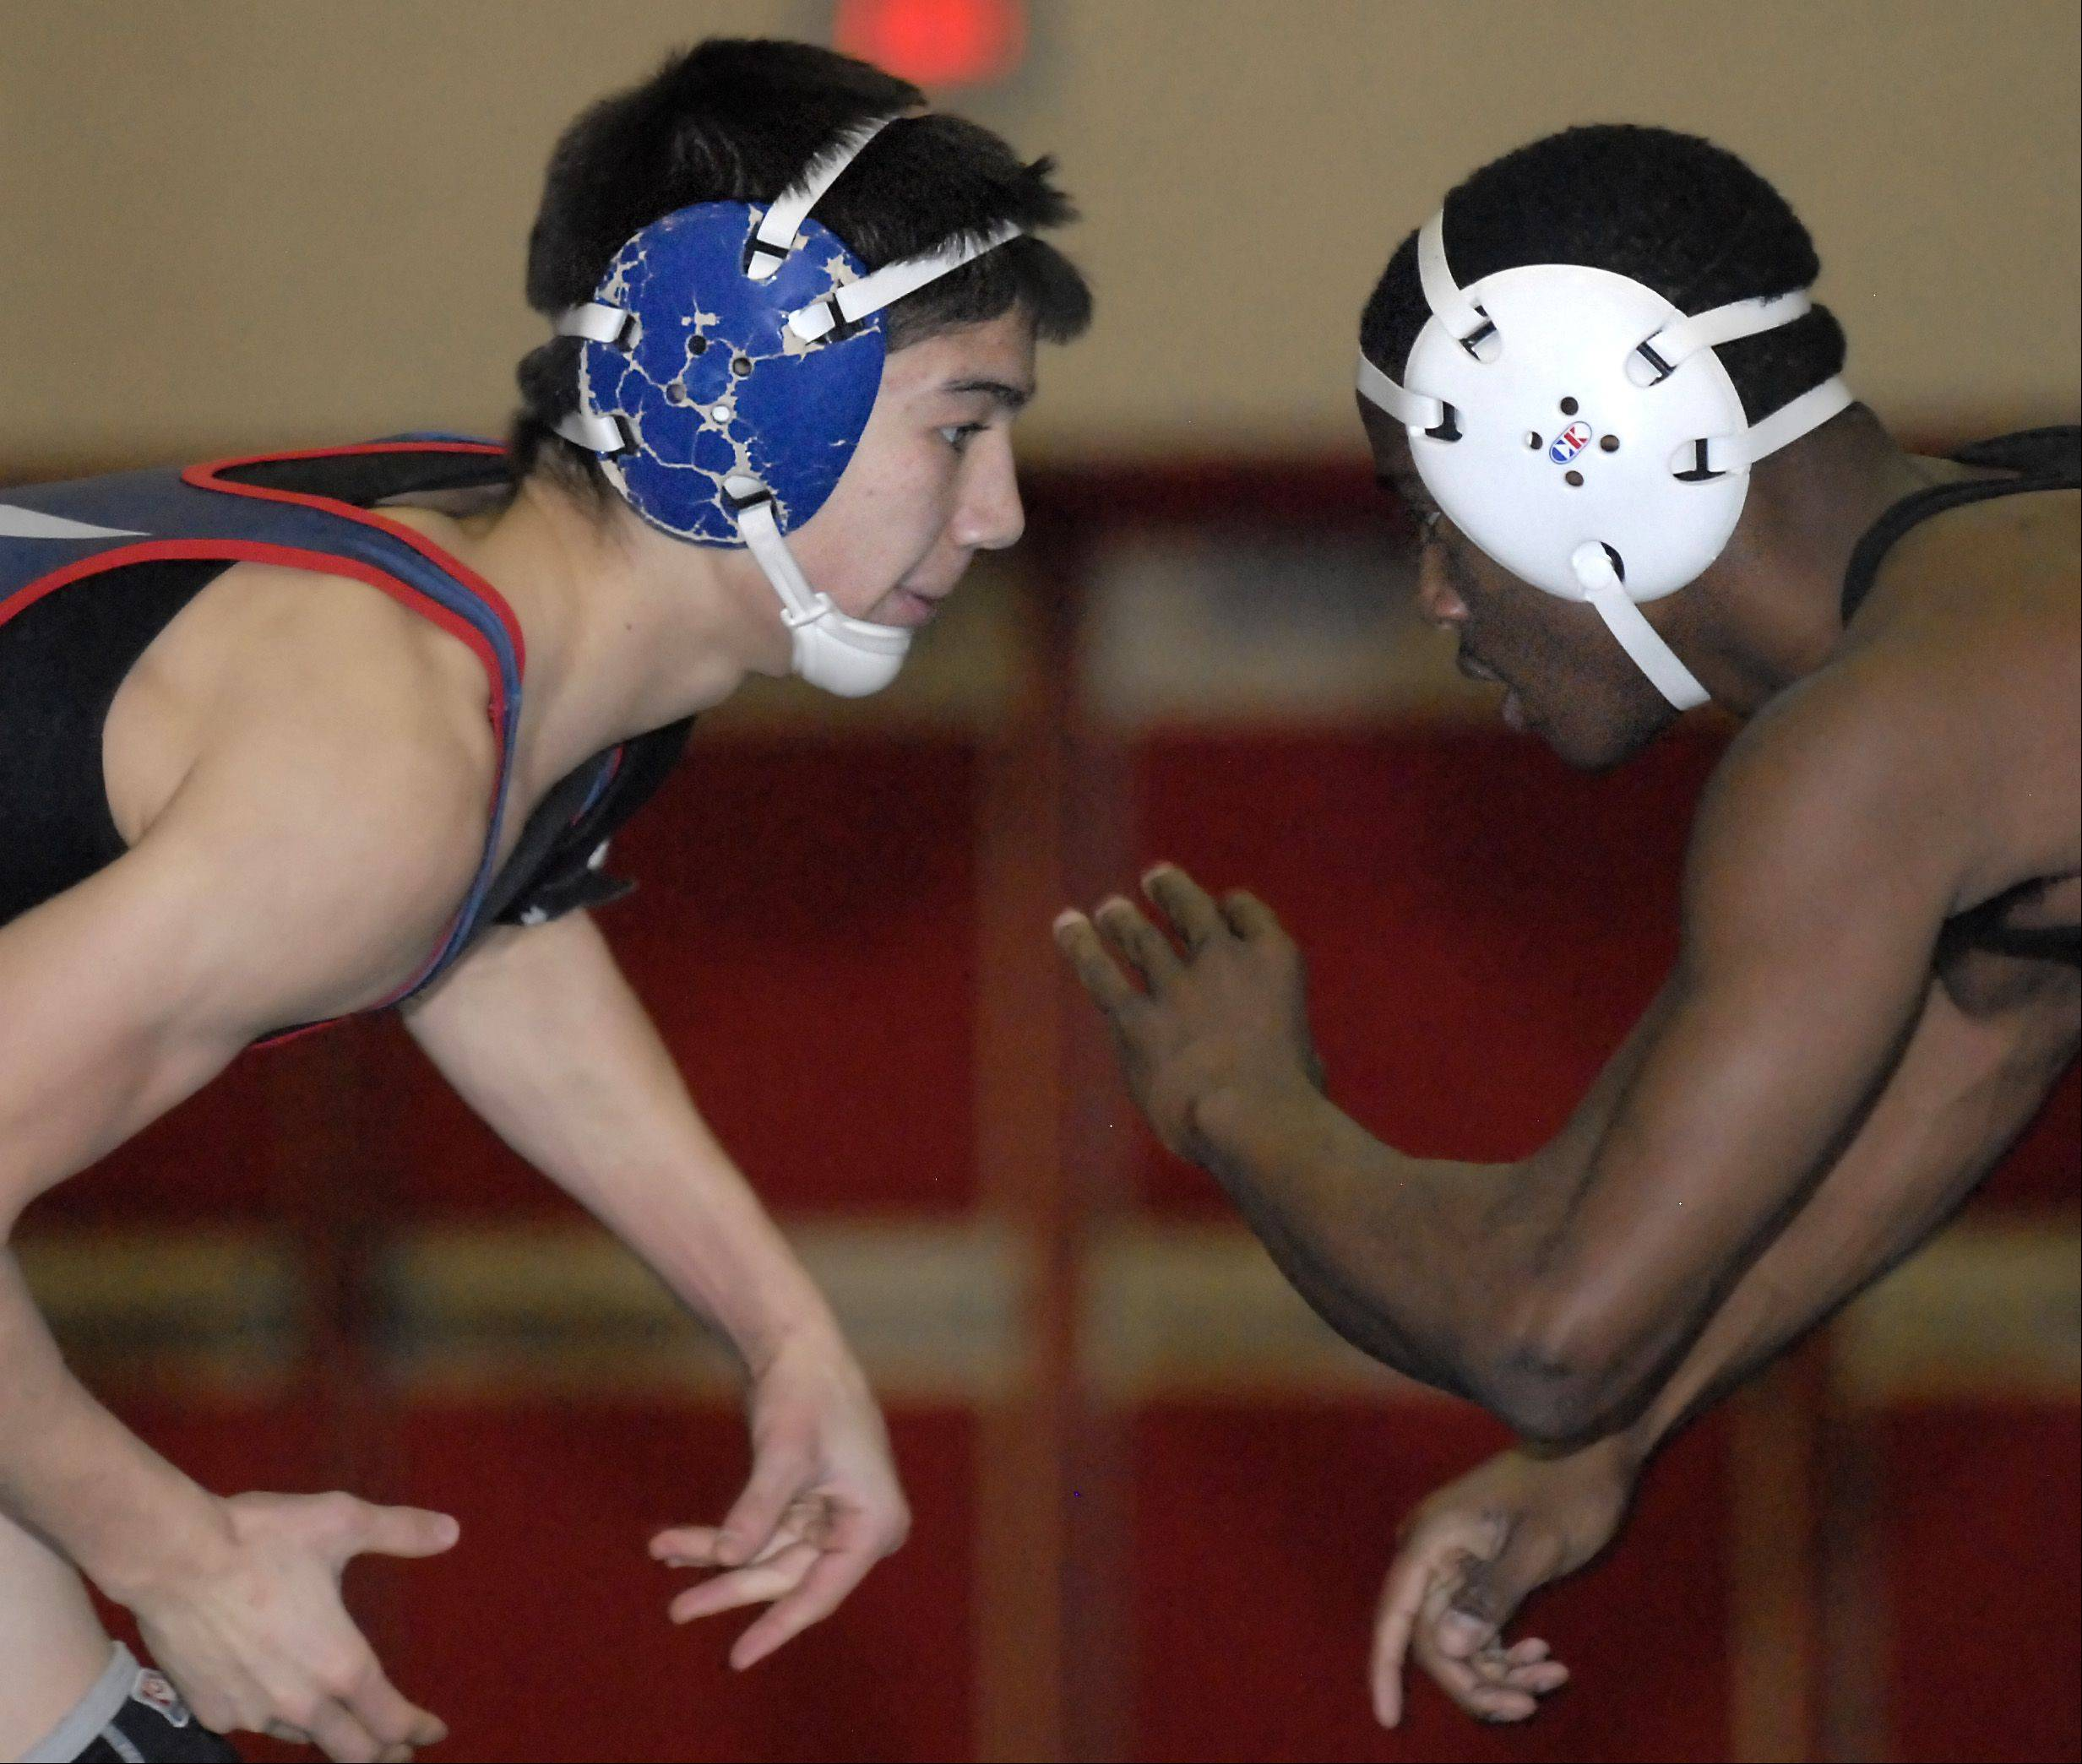 South Elgin's Cody Pych and Geneva's Keneen Freeman face off during the 126-pound match at South Elgin on Saturday. Pych took the match.